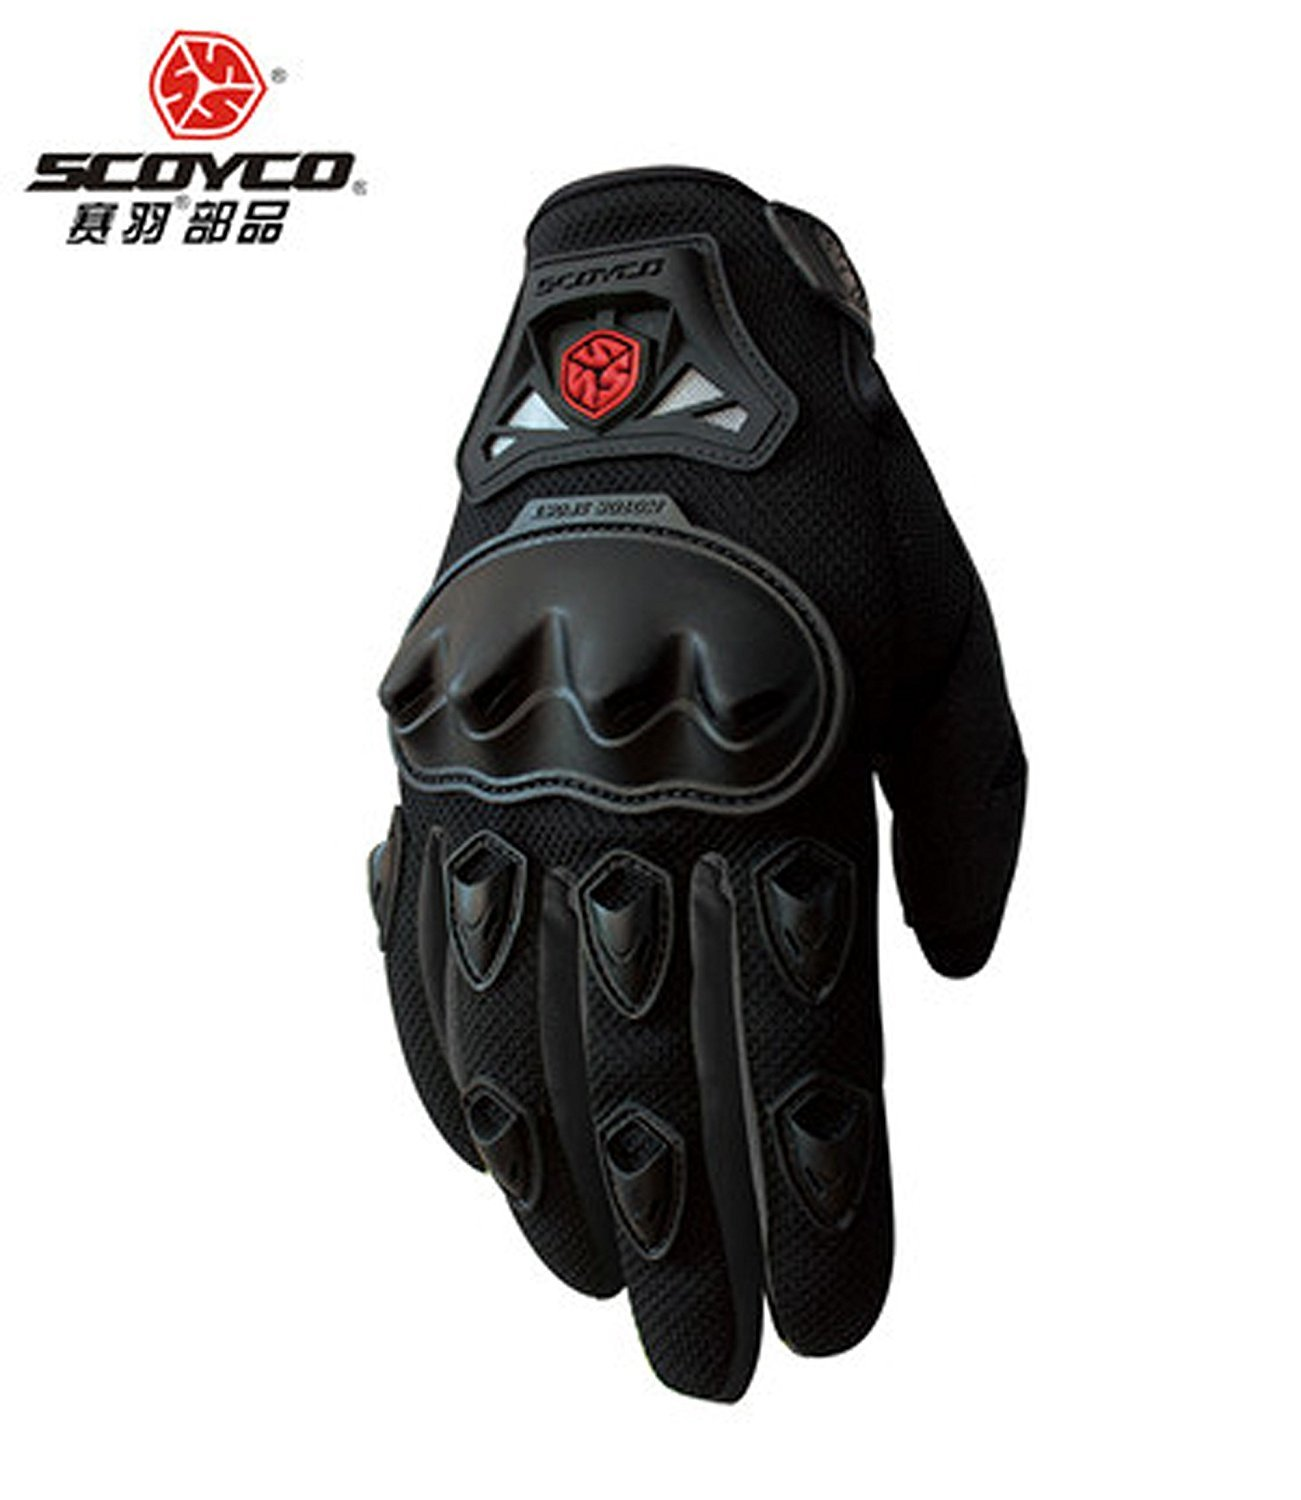 Car driving gloves india - Fulgent Smc29blackl Scoyco Mc29 Motorcycle Riding Gloves